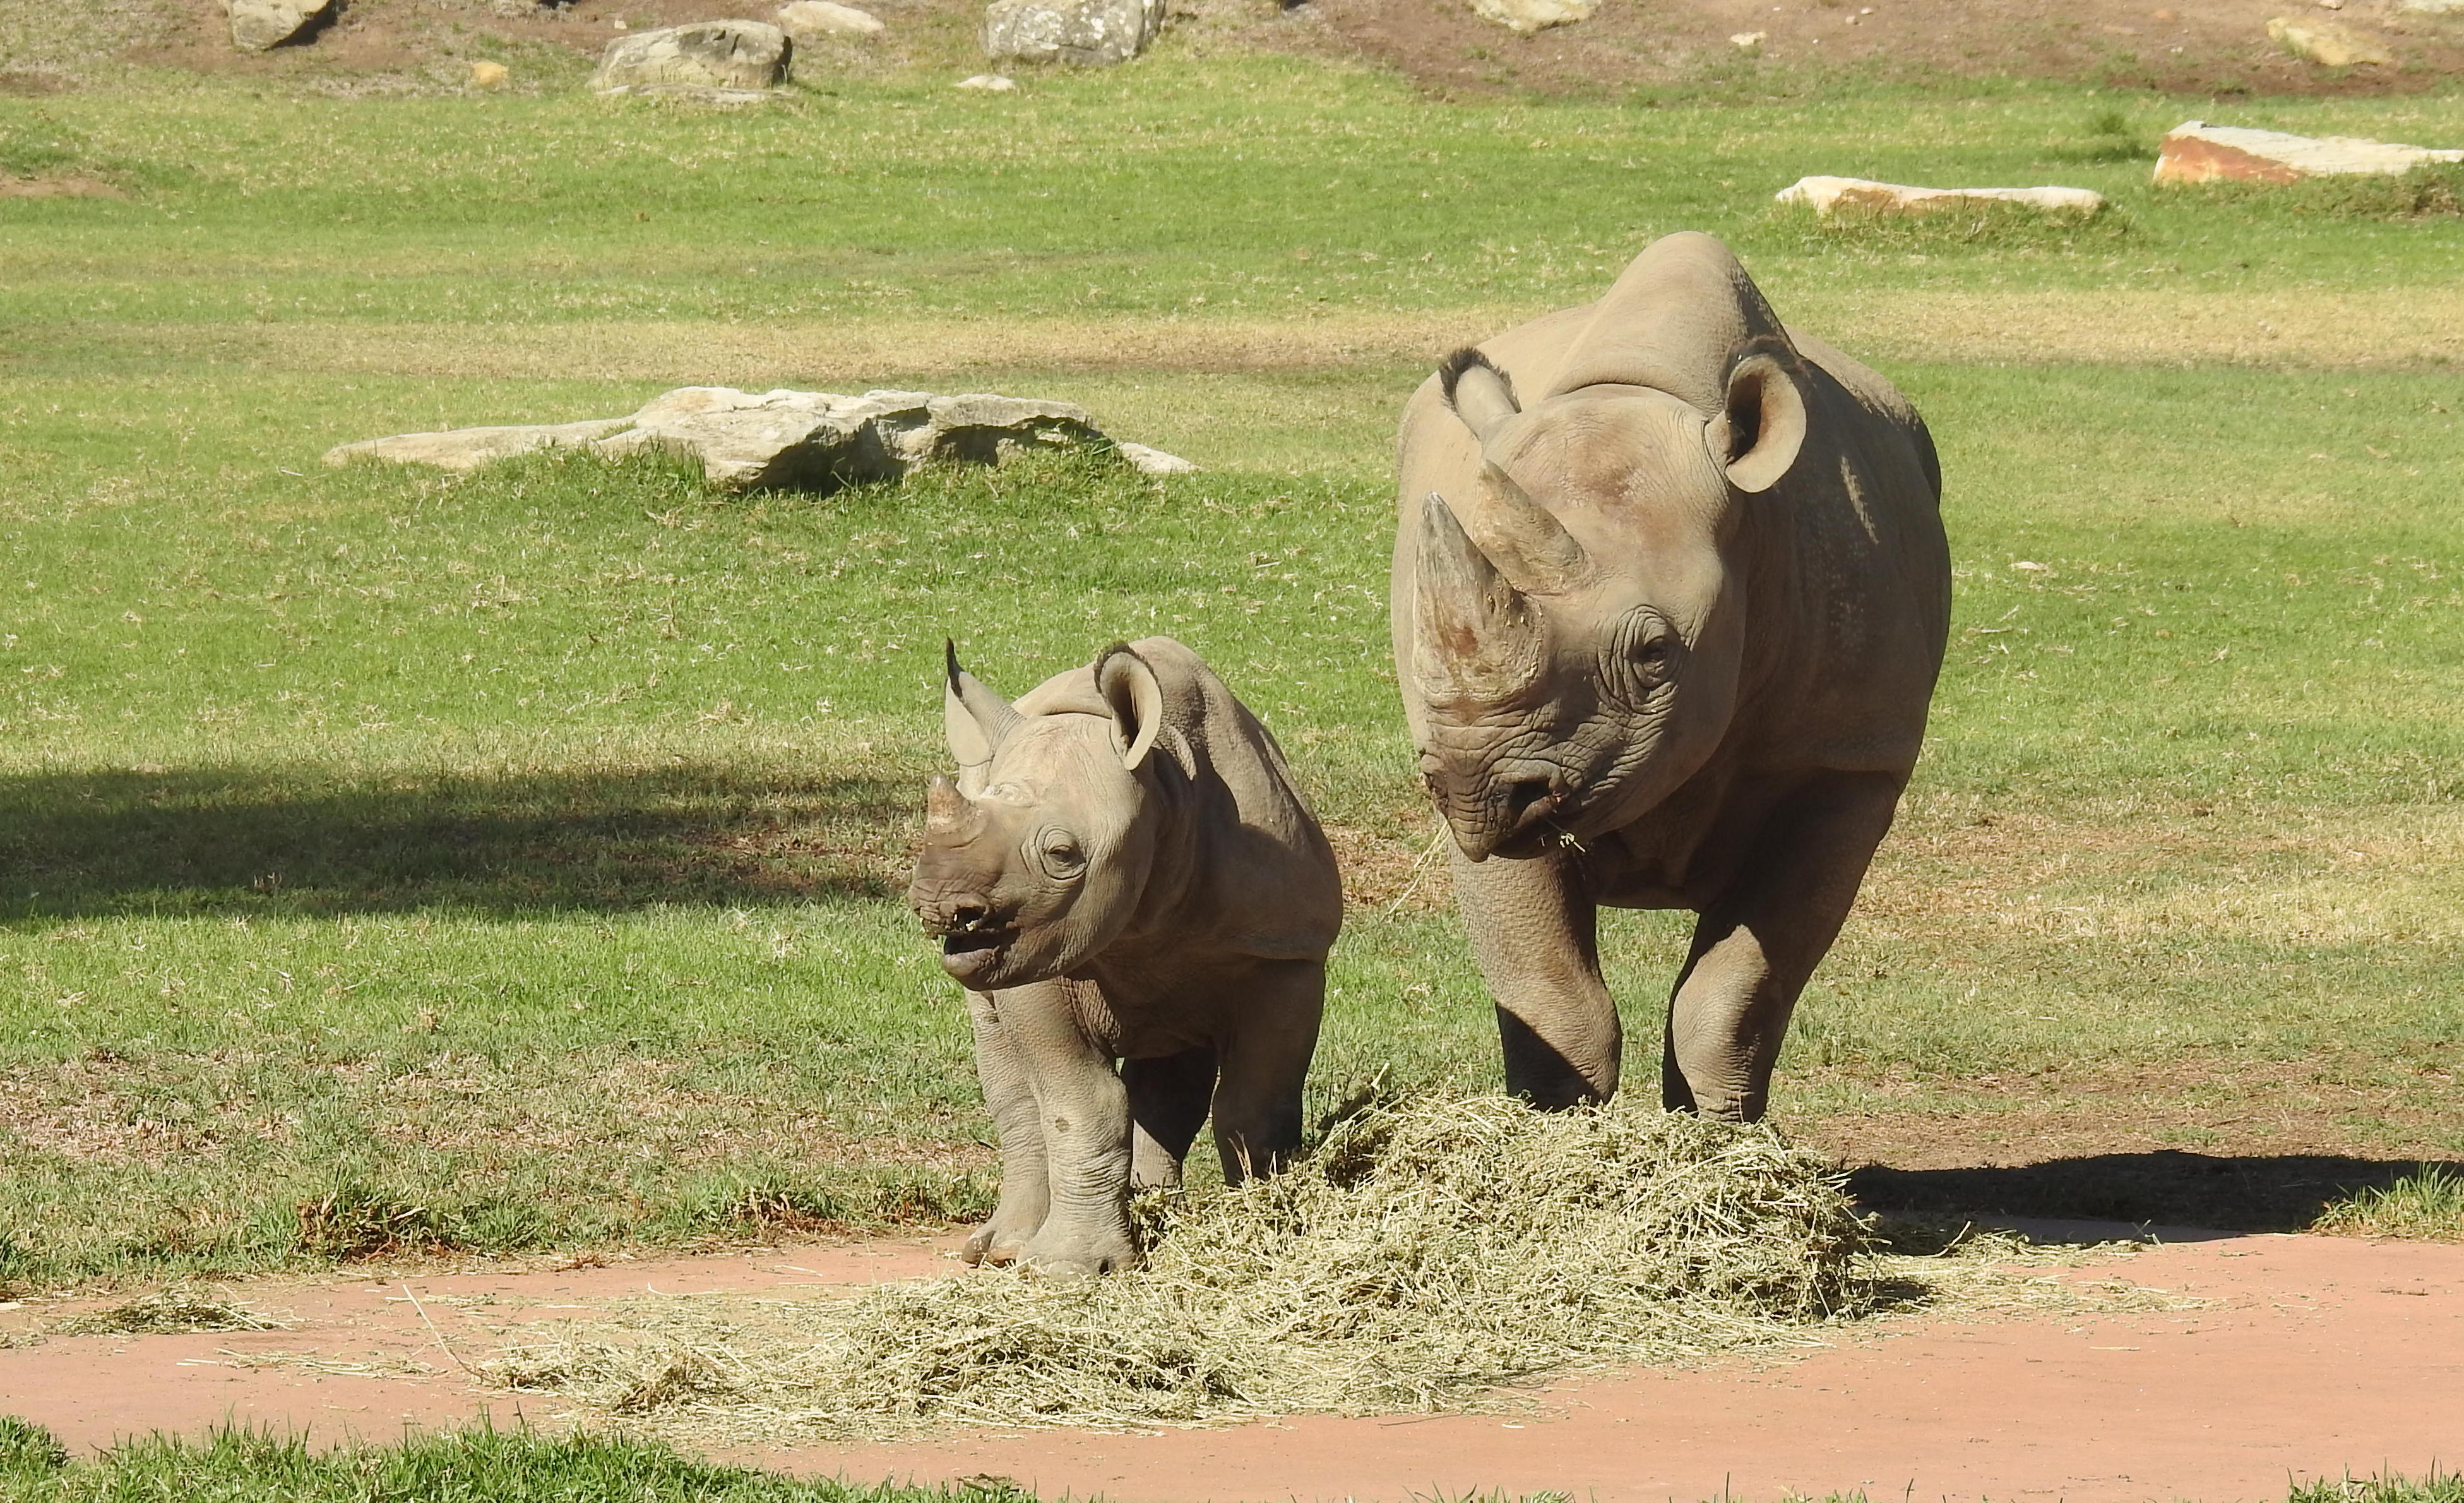 White rhino and youngster. Some are suggesting wearing more rhinos to Australia's outback (contained of course, but in enormous enclosures) to protect them from poaching inter hime countries.